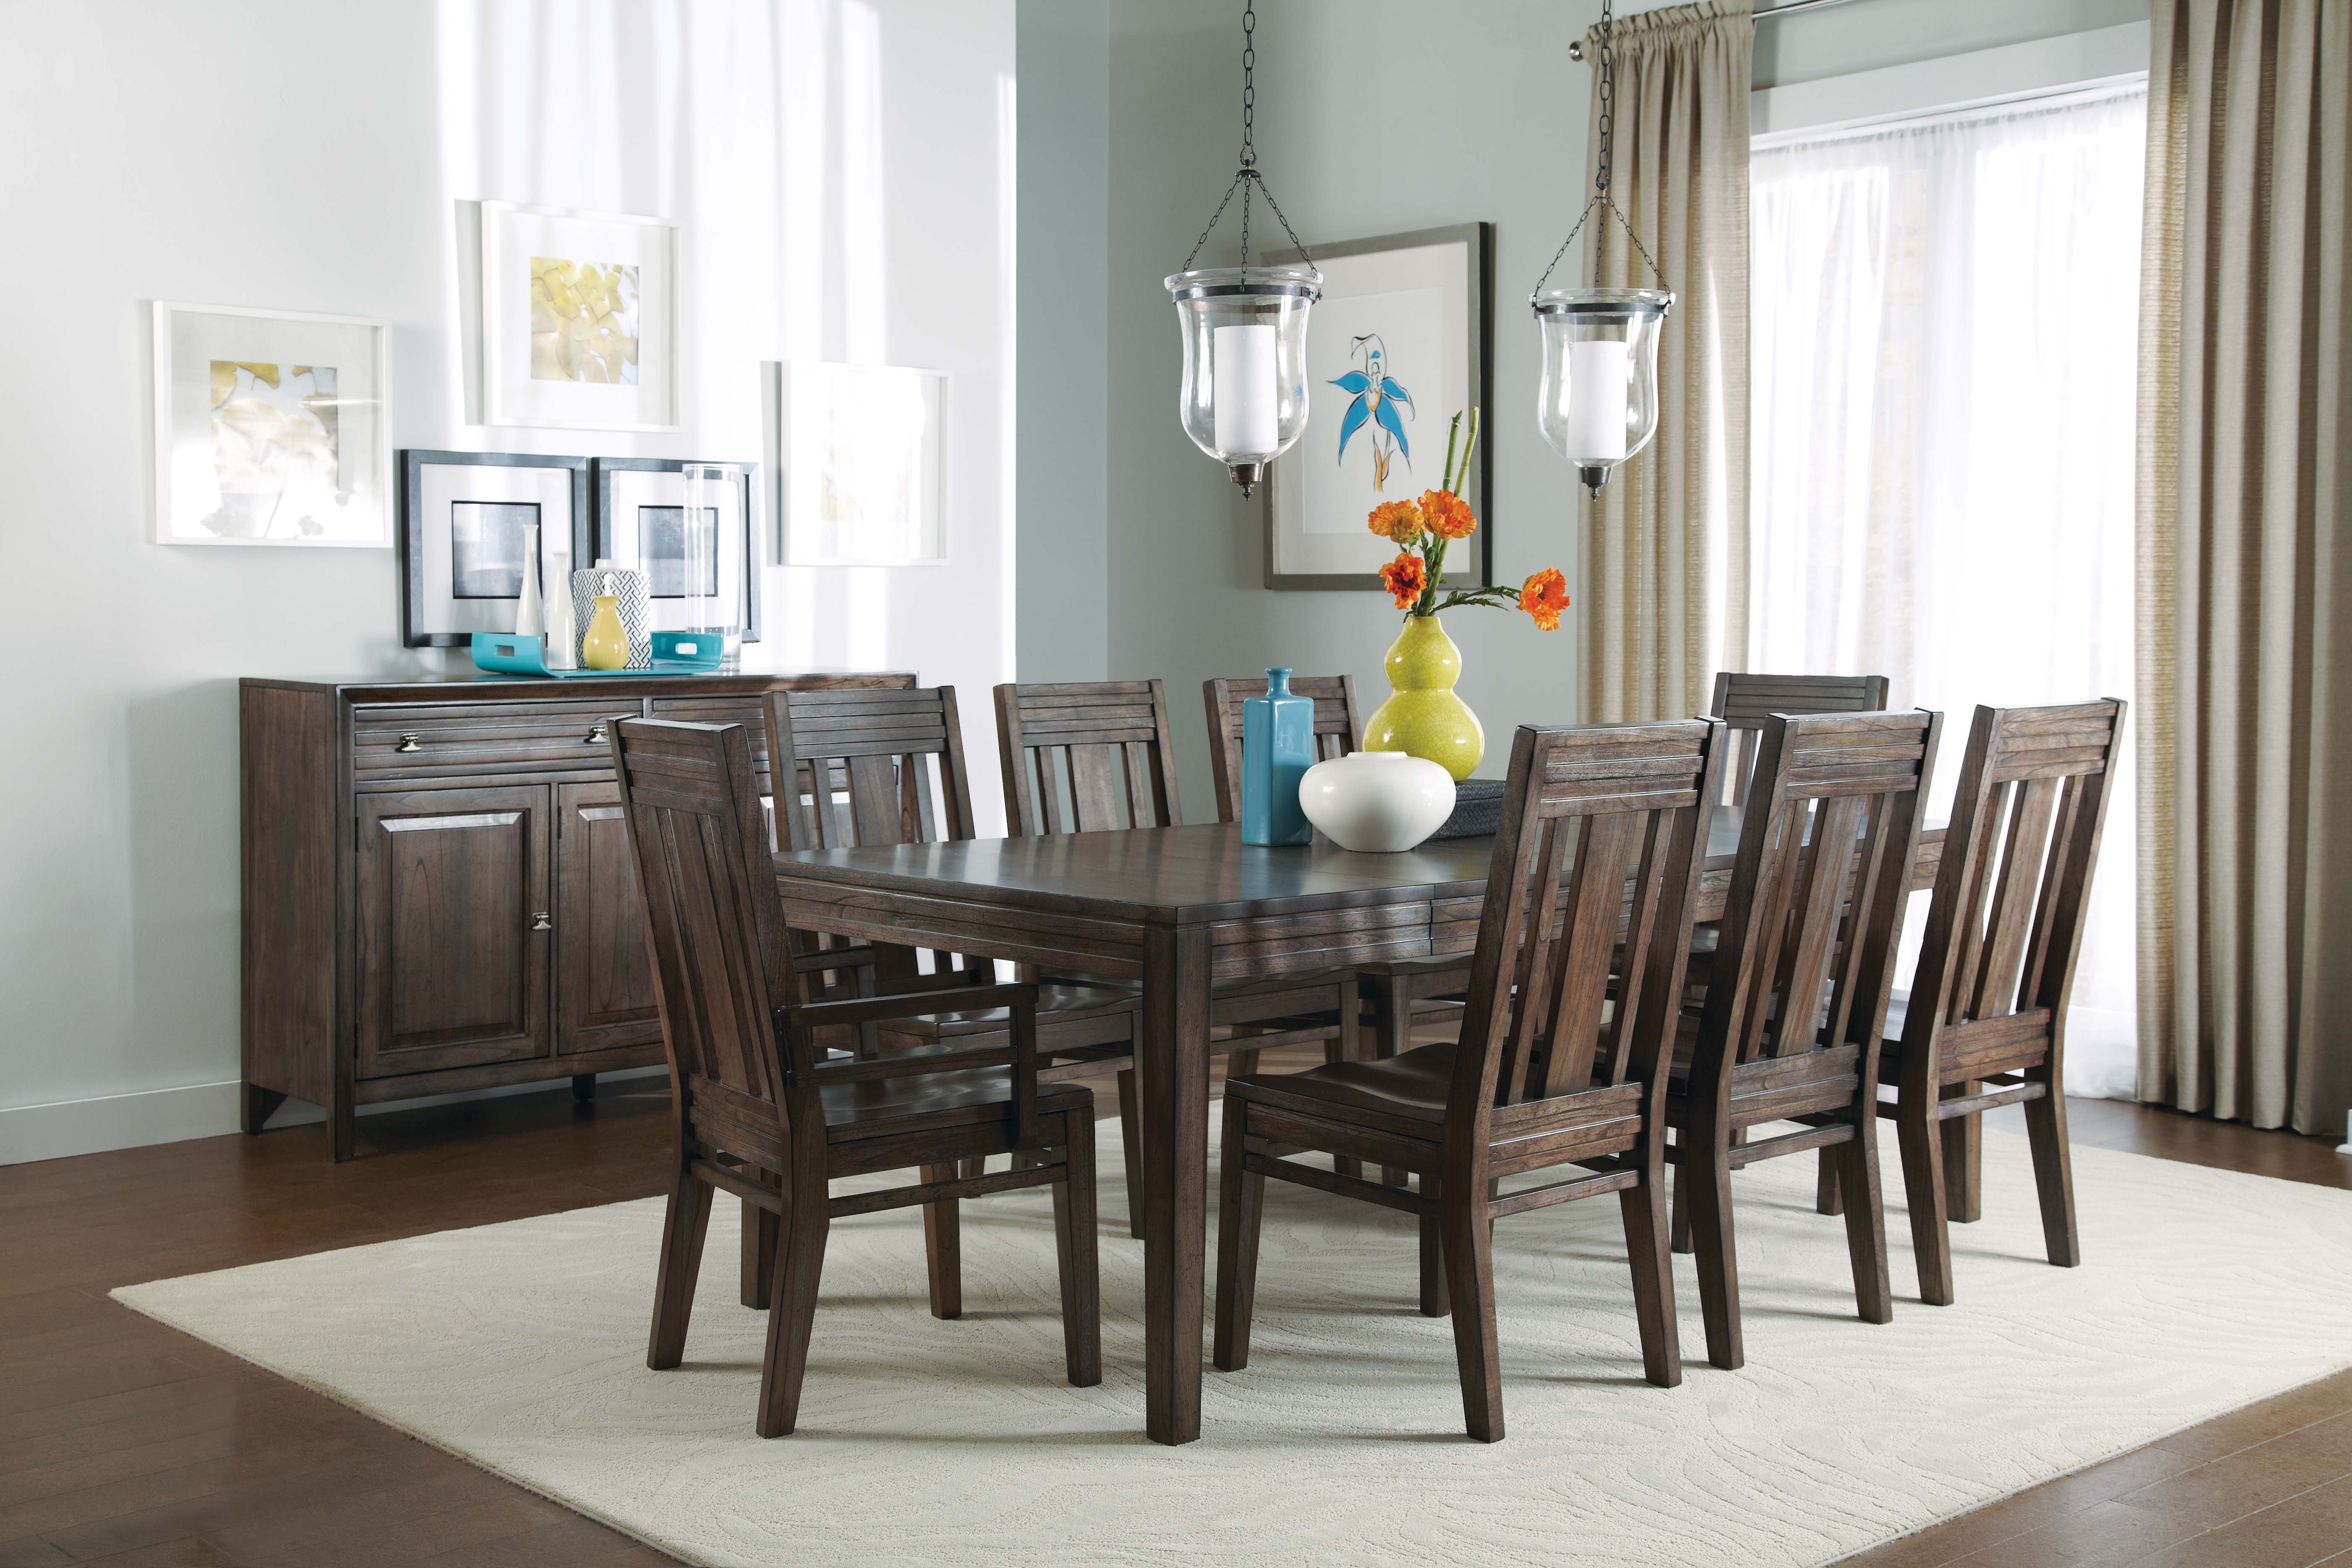 Montreat 5 Piece Dining Room Set: Includes Table U0026 4 Side Chairs GP: